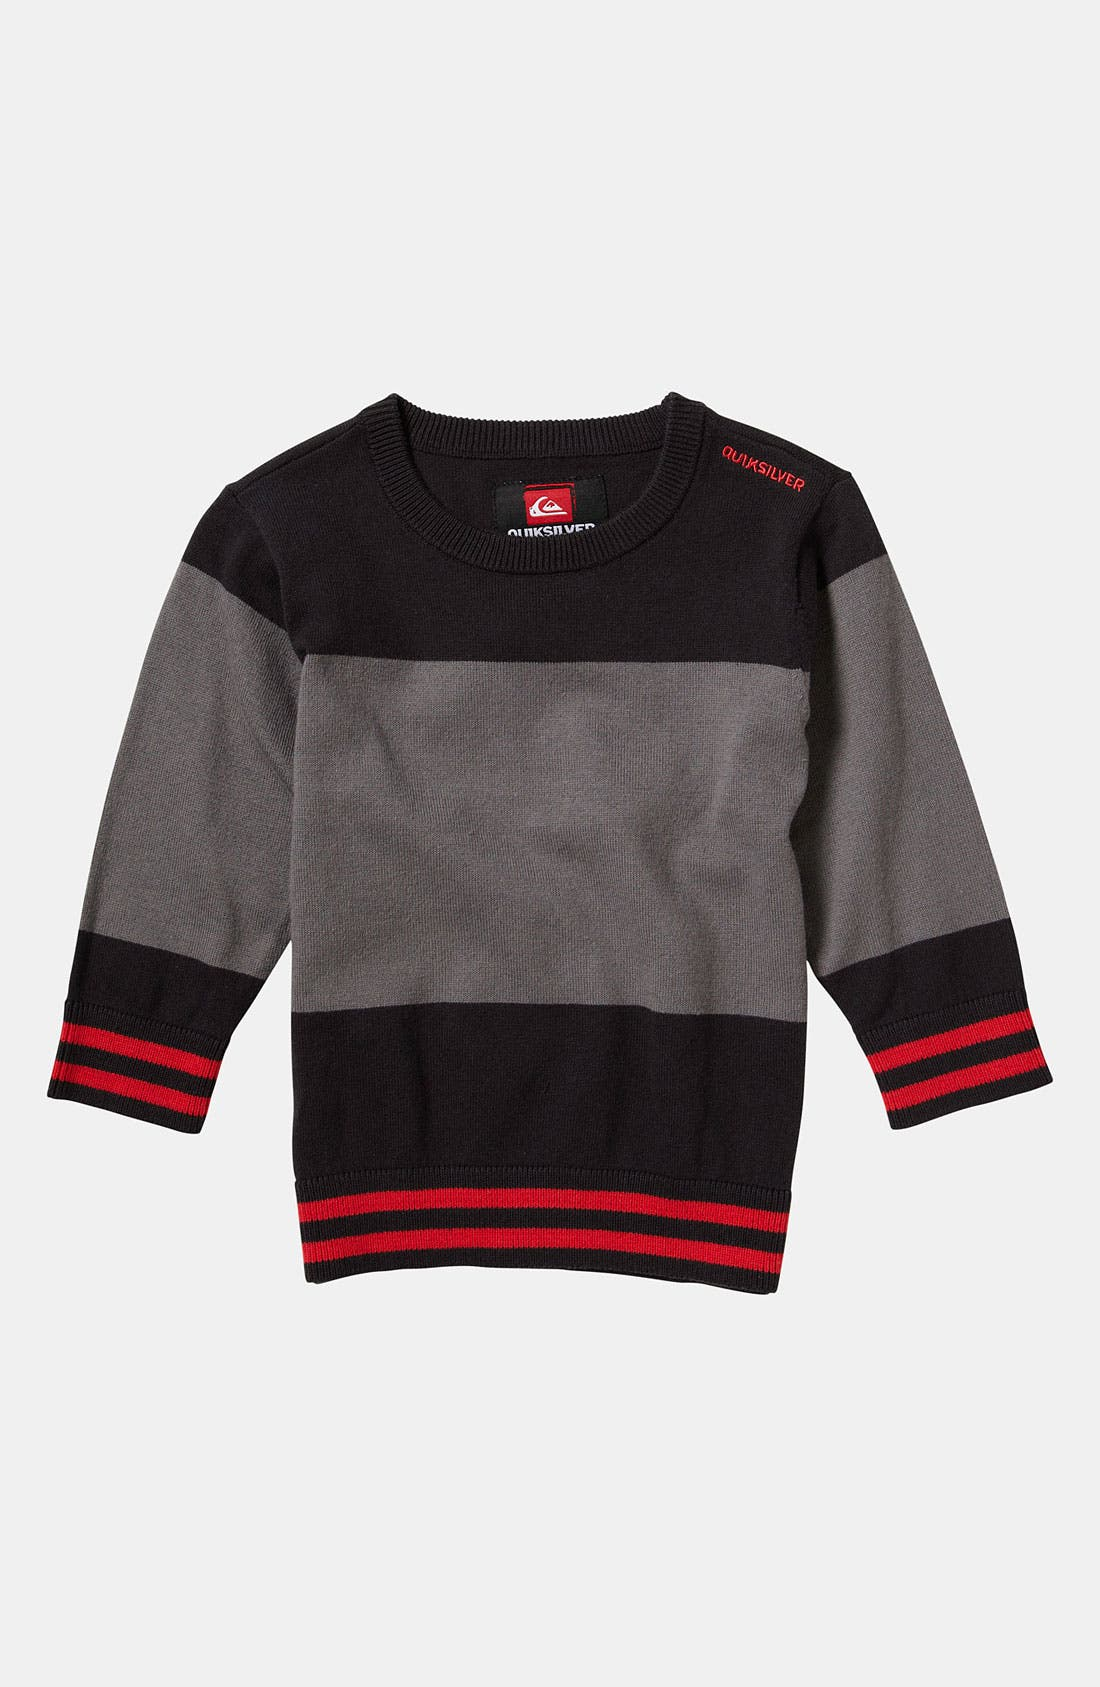 Alternate Image 1 Selected - Quiksilver 'Wild Card' Sweater (Infant)